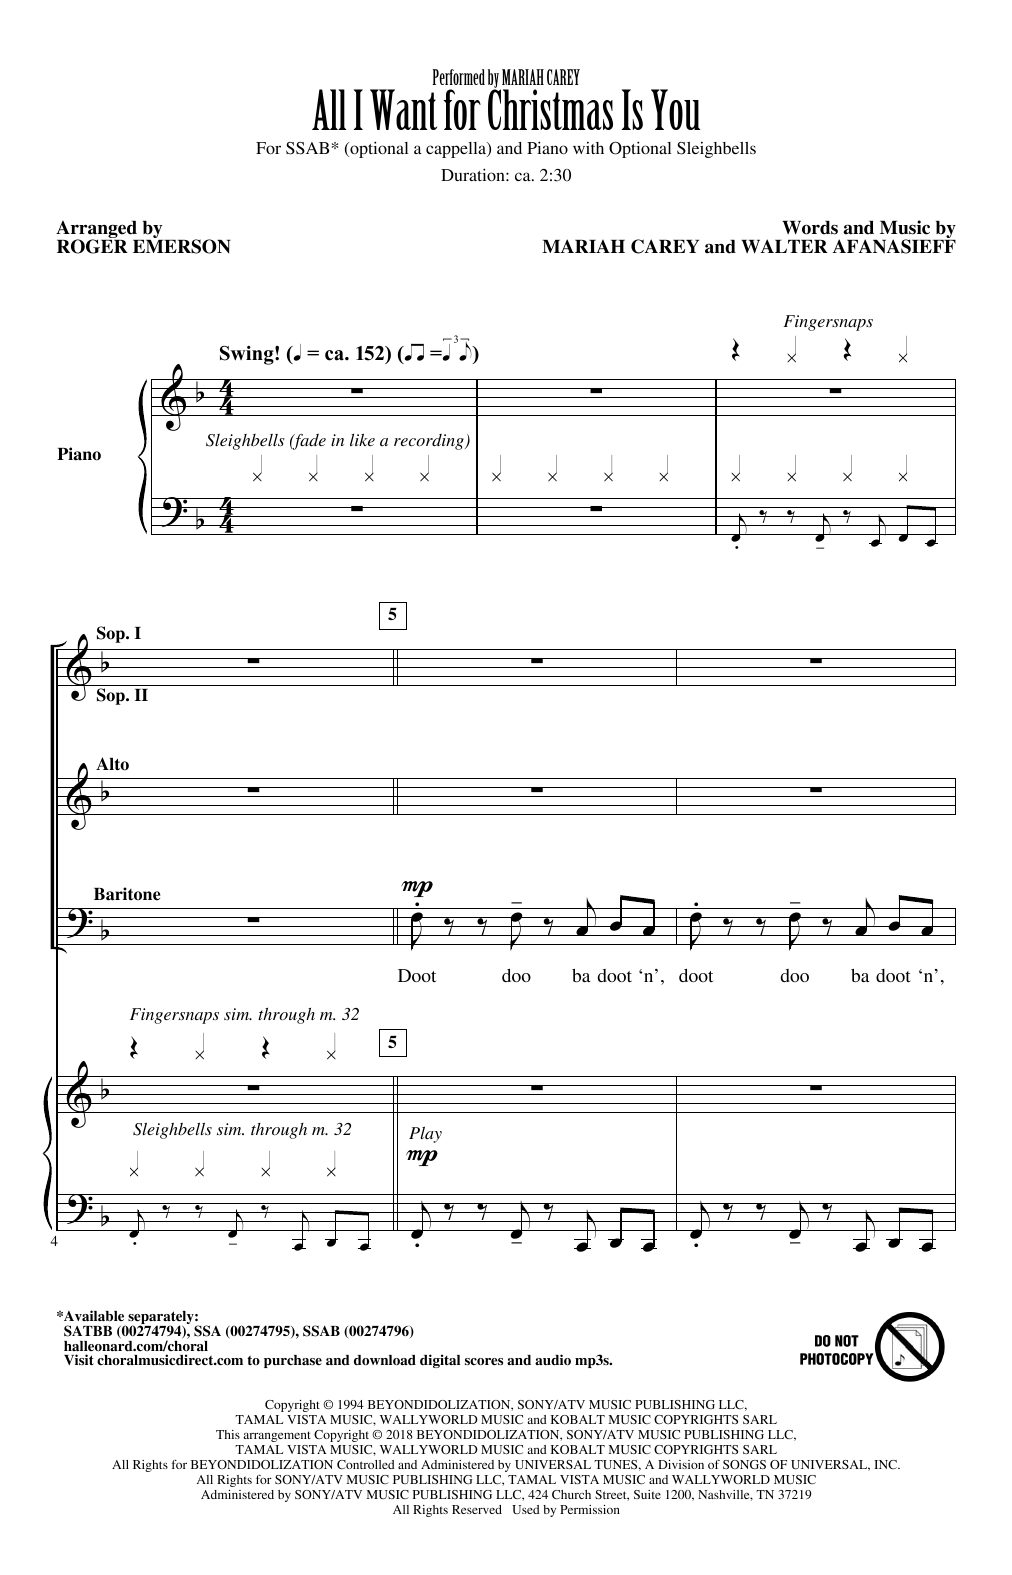 Mariah Carey 'All I Want For Christmas Is You (arr. Roger